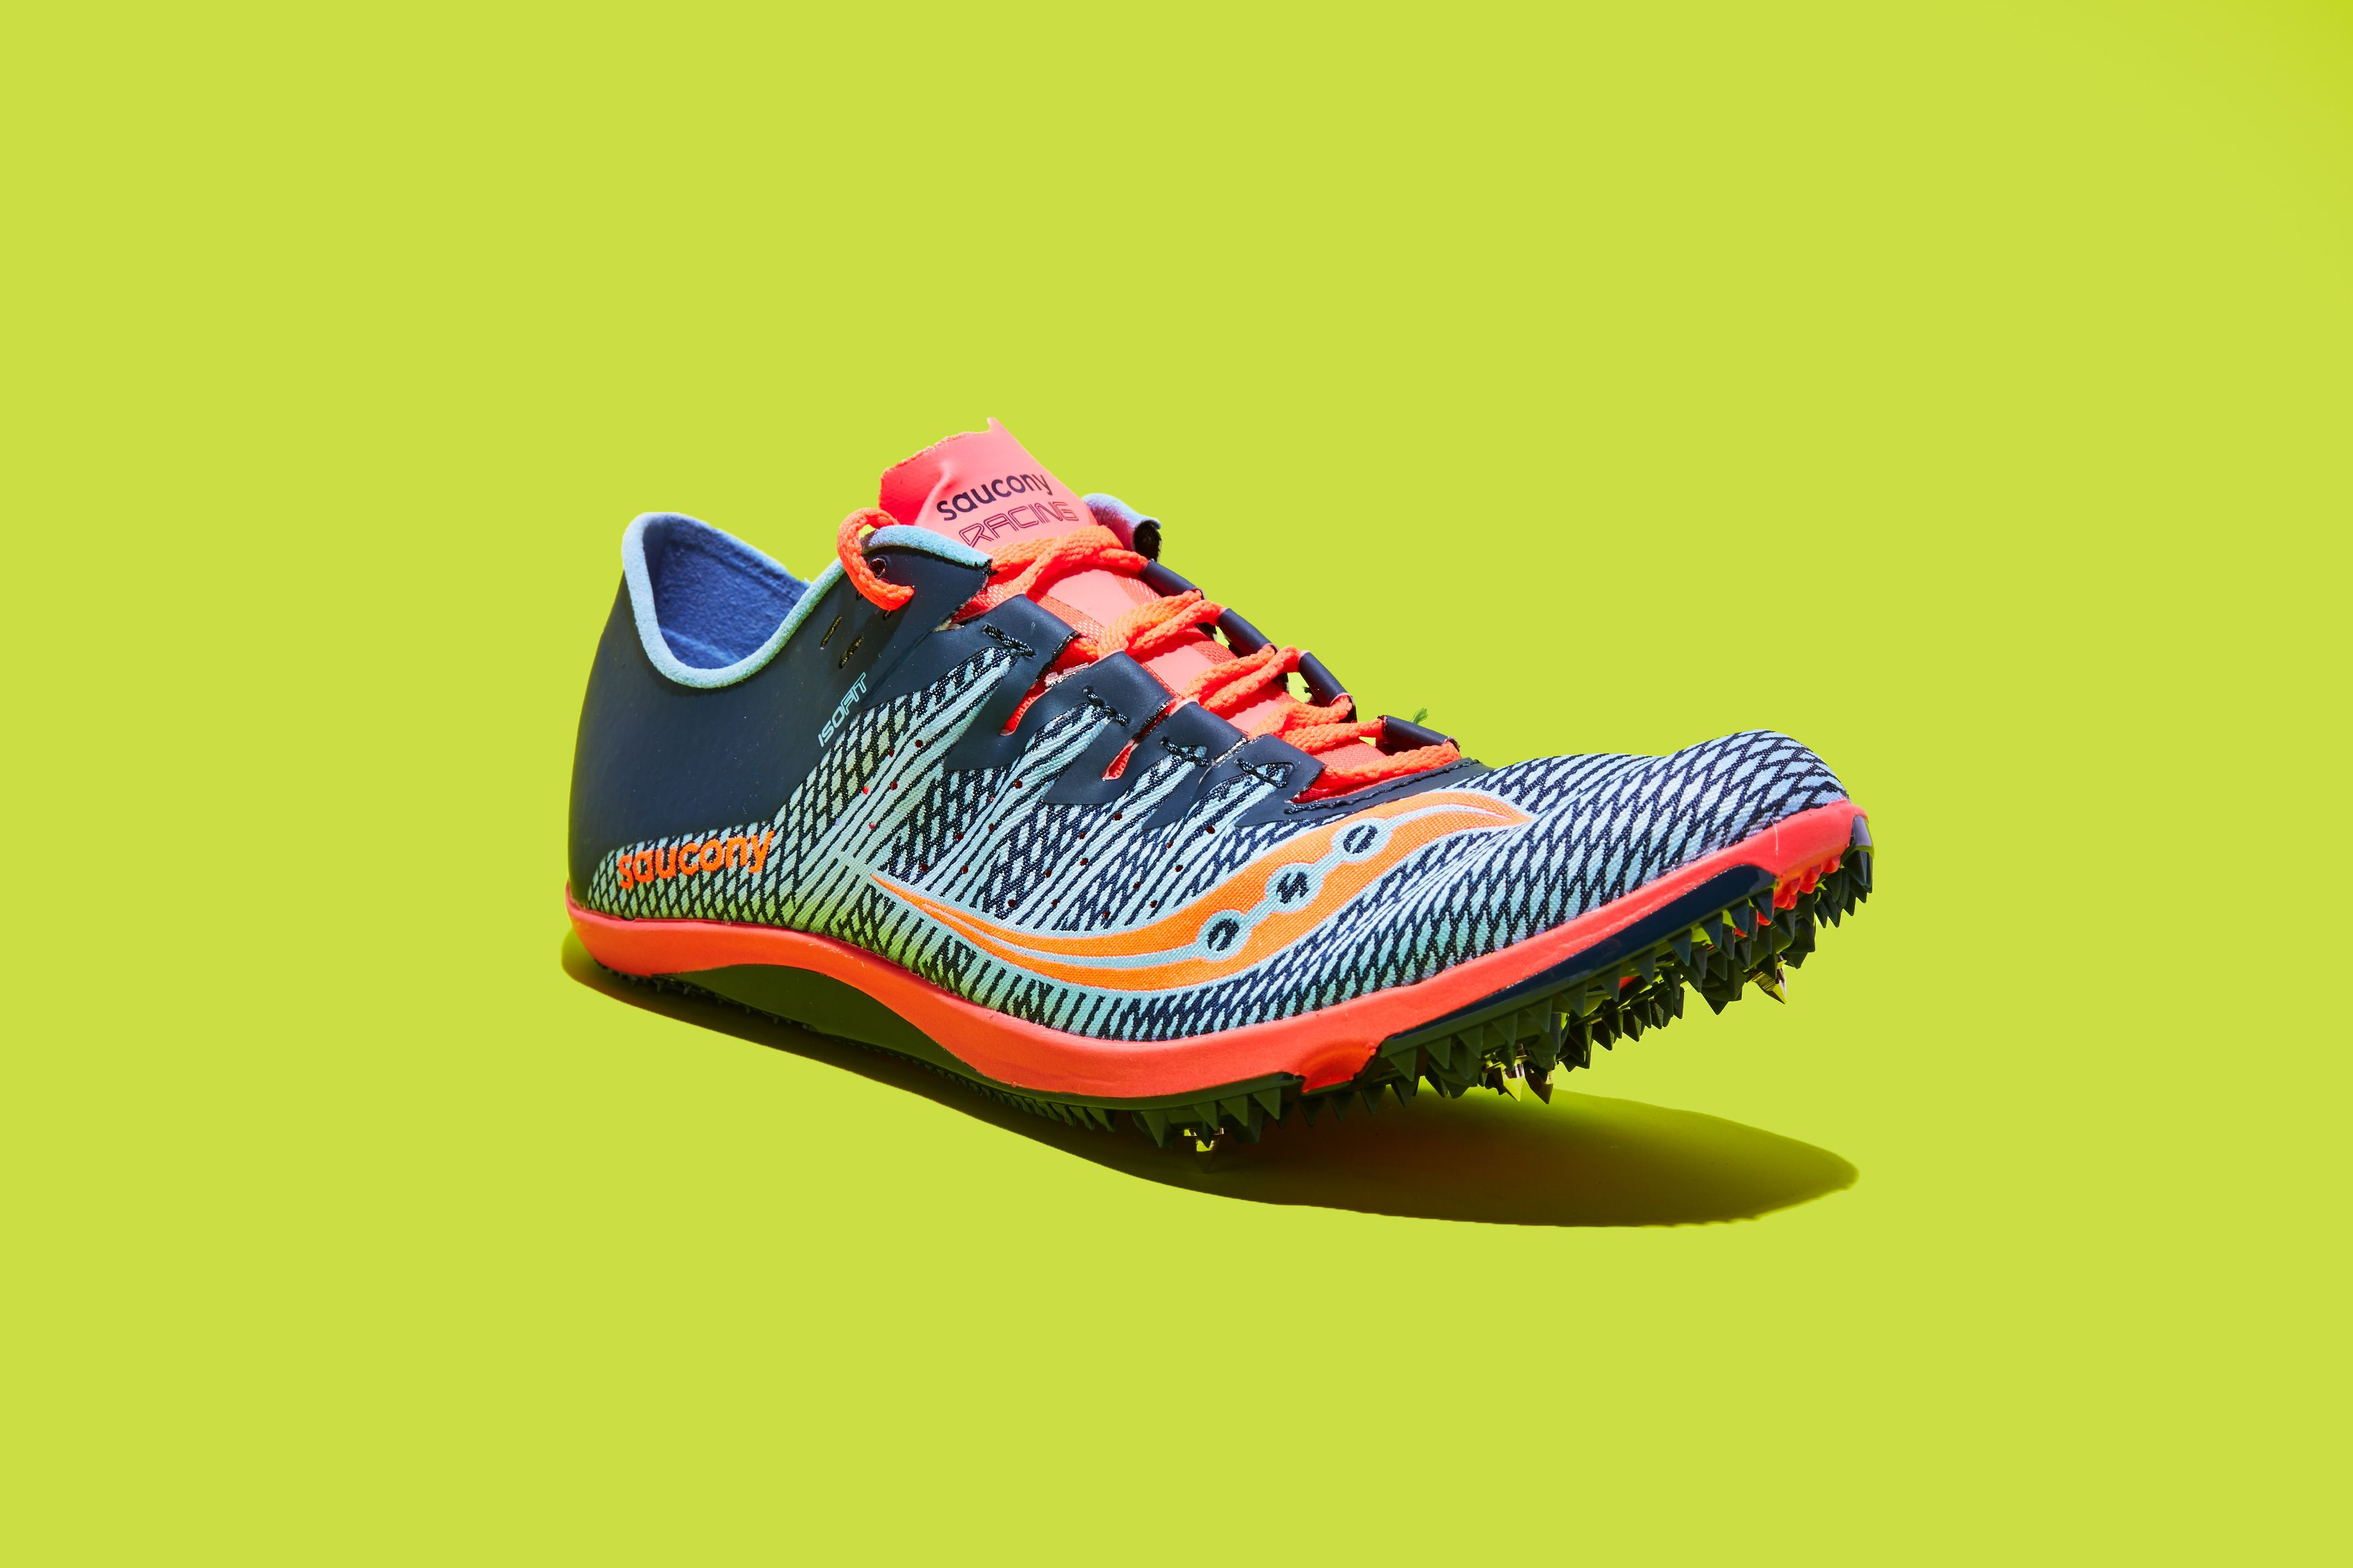 The Best New Track Spikes for 2018 4089813f775